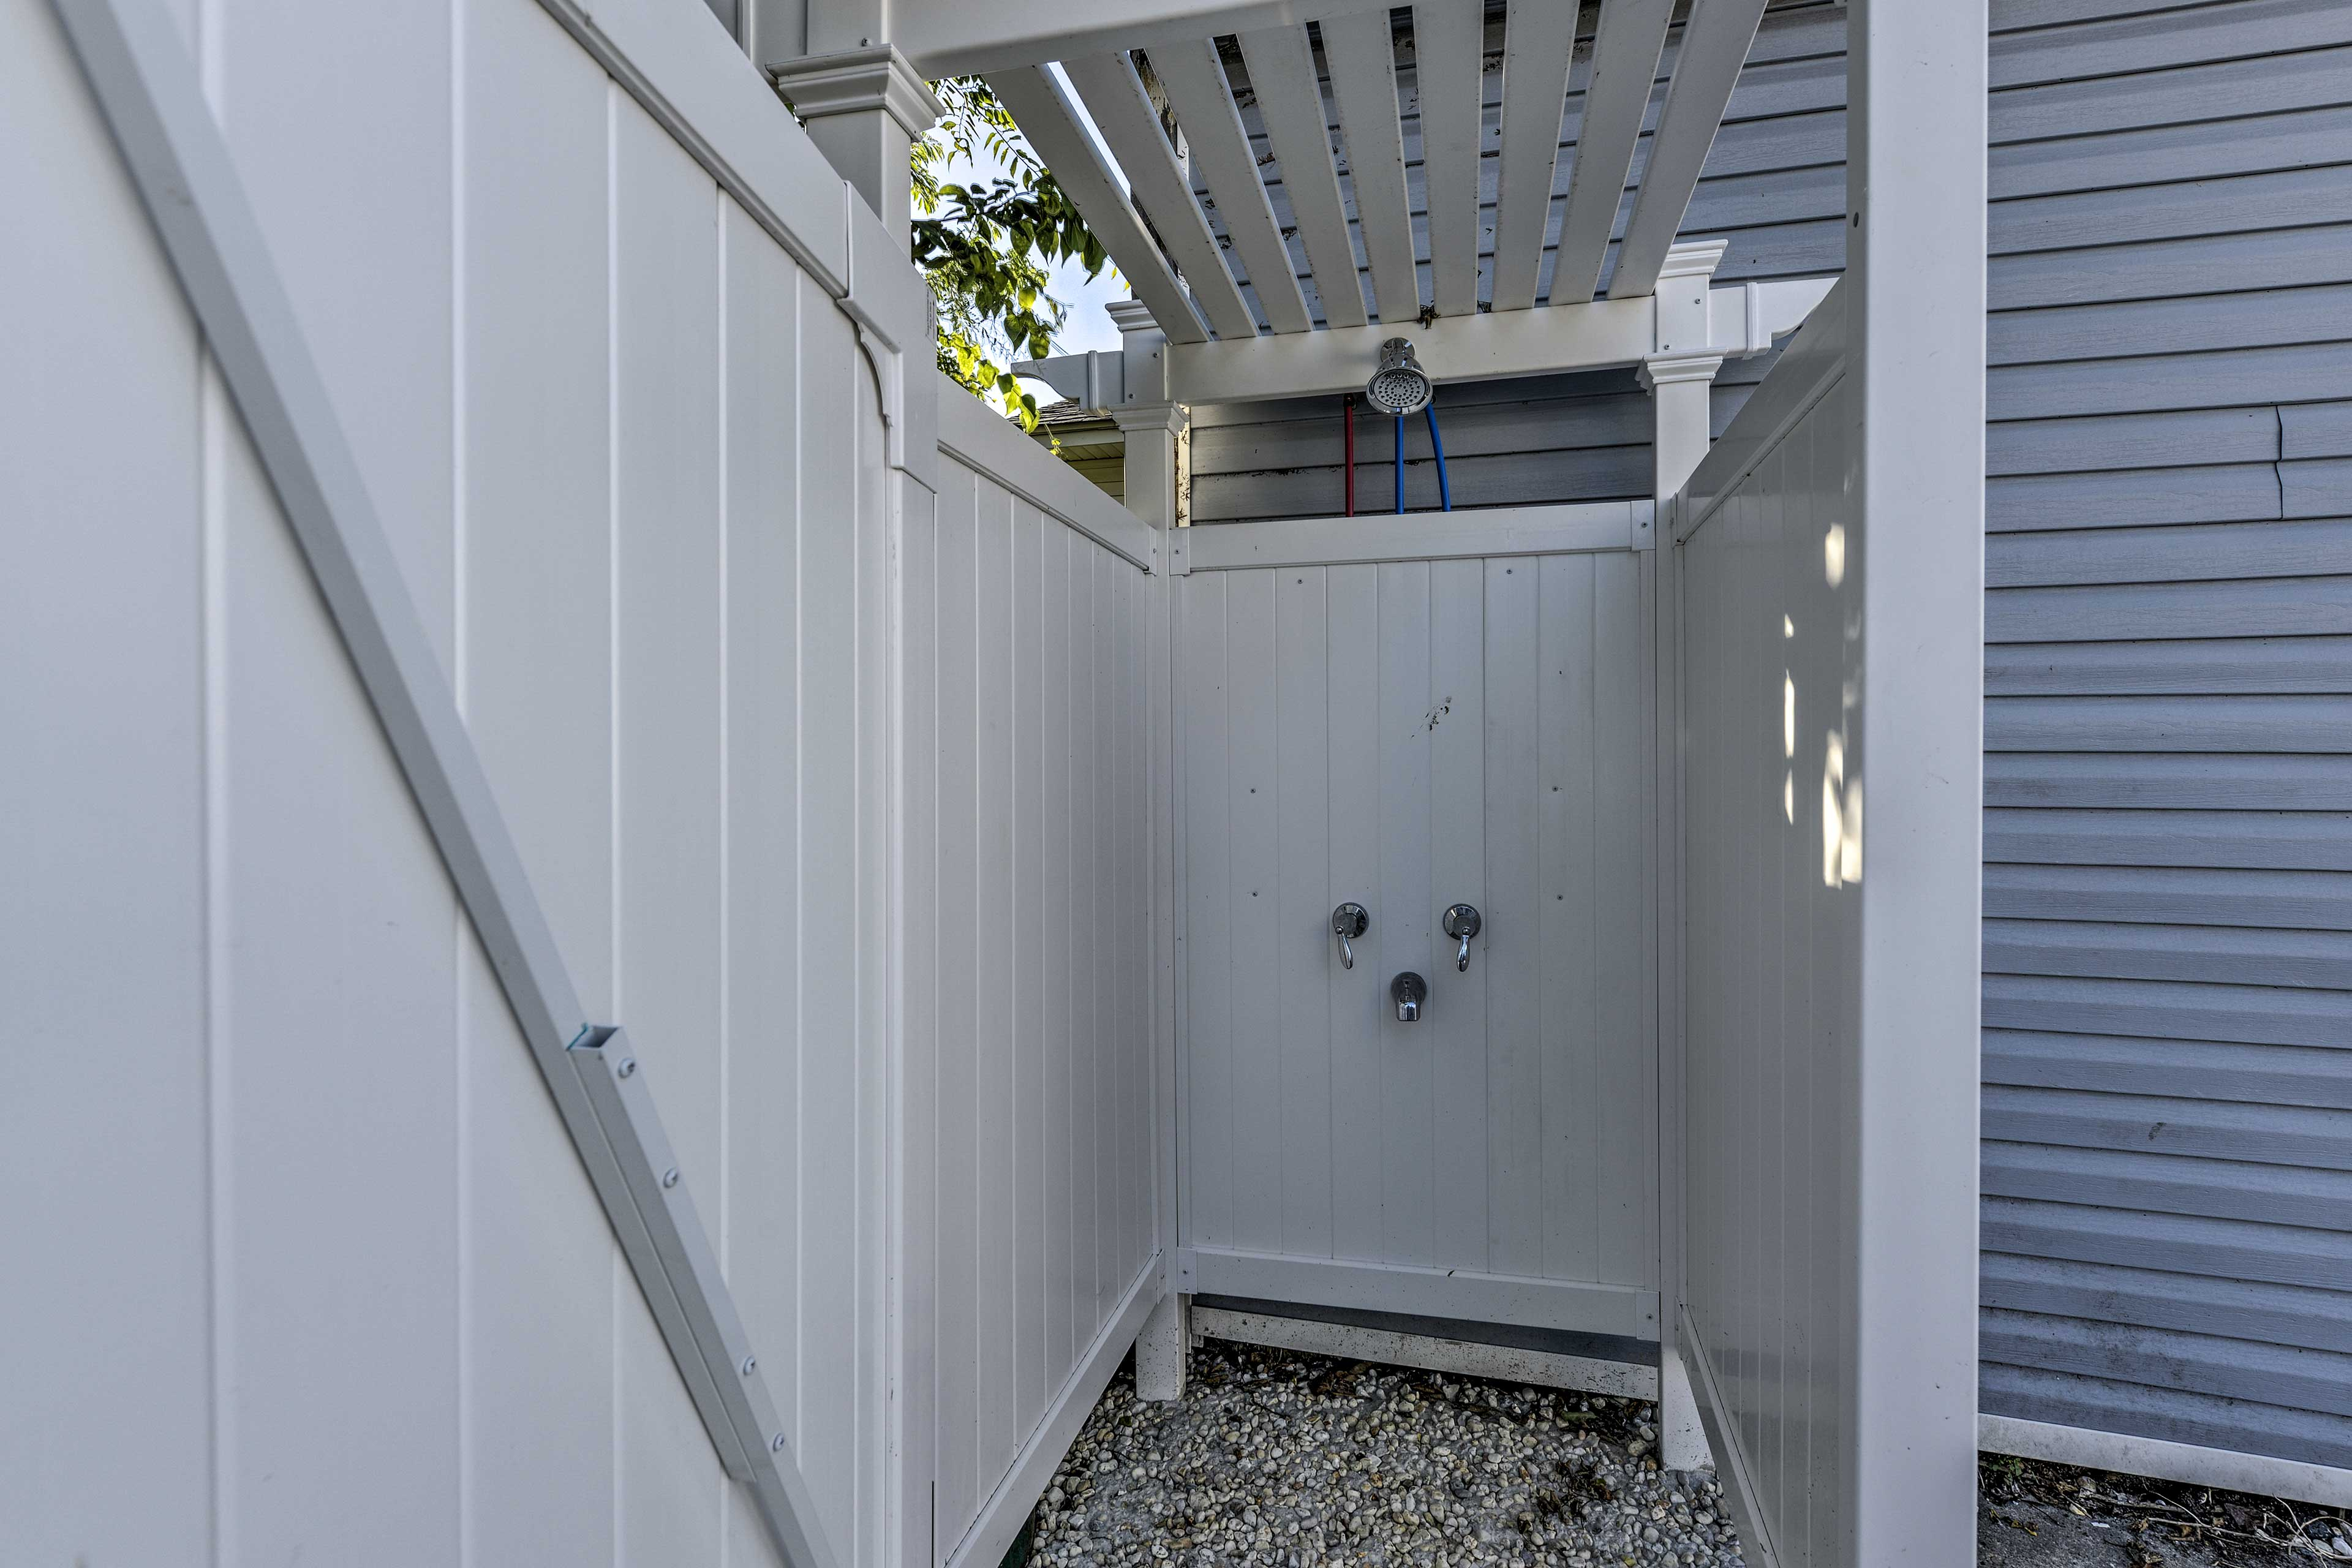 The outdoor shower is so convenient!